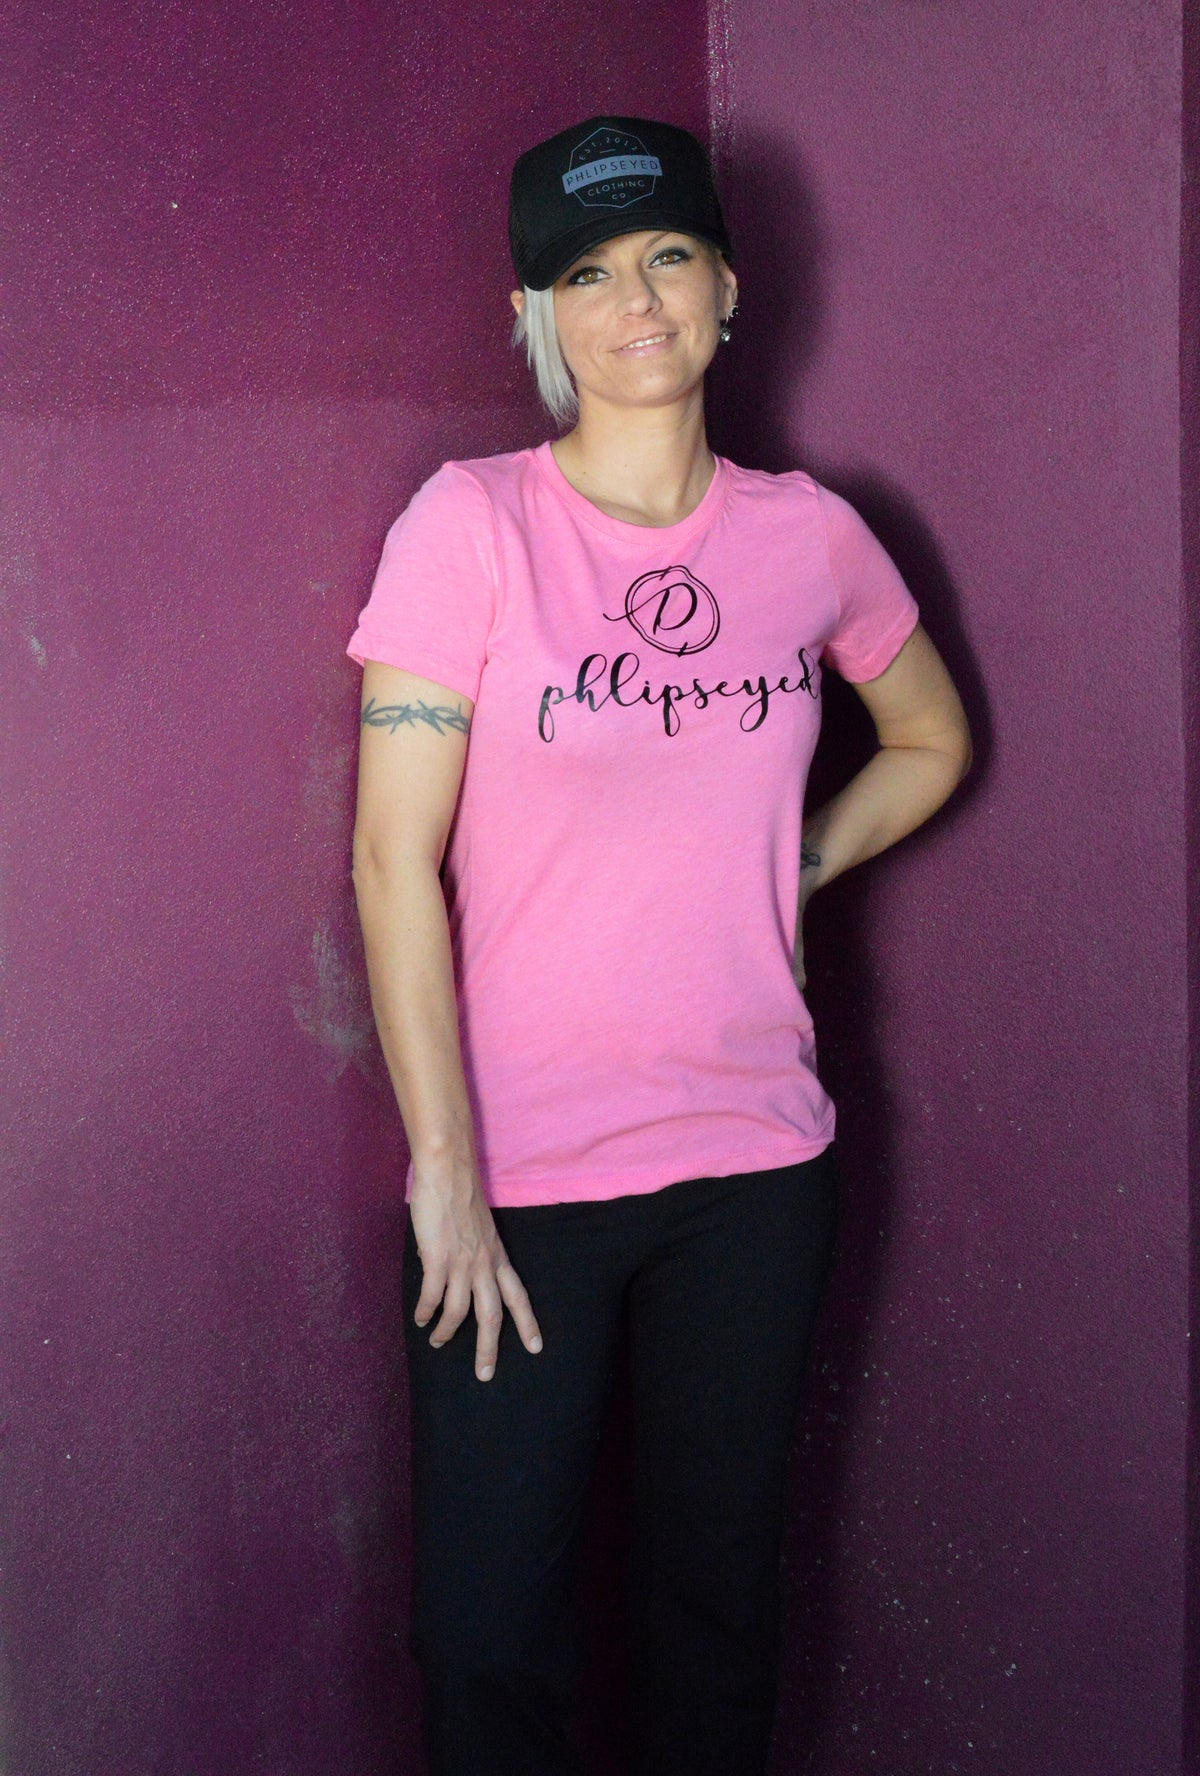 Phlipseyed Sequence Women's Tri-blend Tee / Vintage Pink